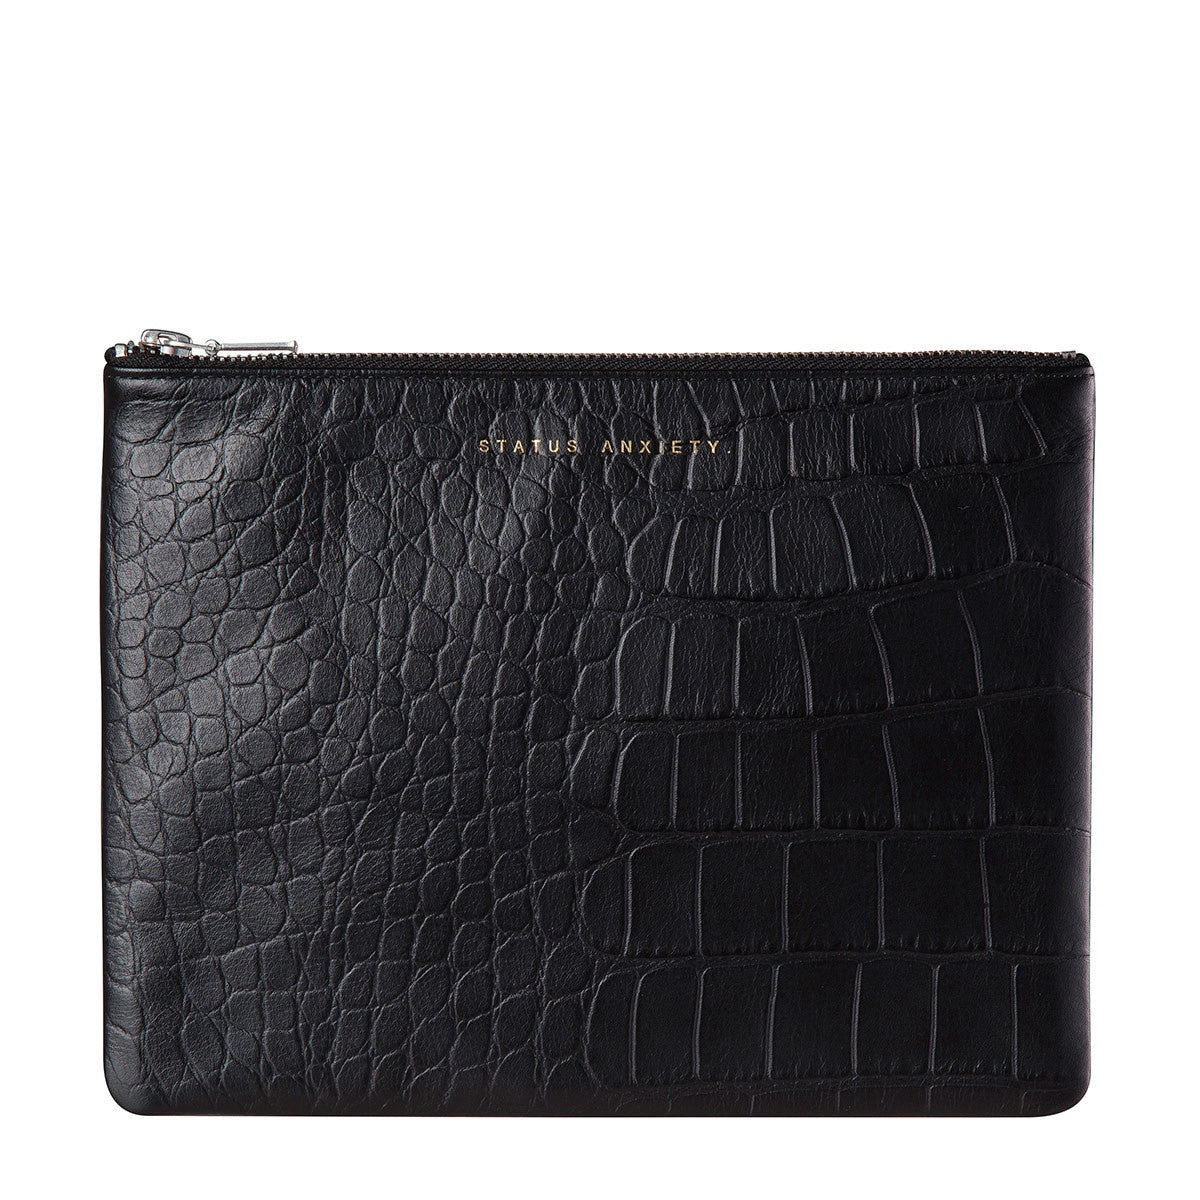 Status Anxiety Anti-Heroine Clutch- Black Croc Emboss - The Artisan Storeroom